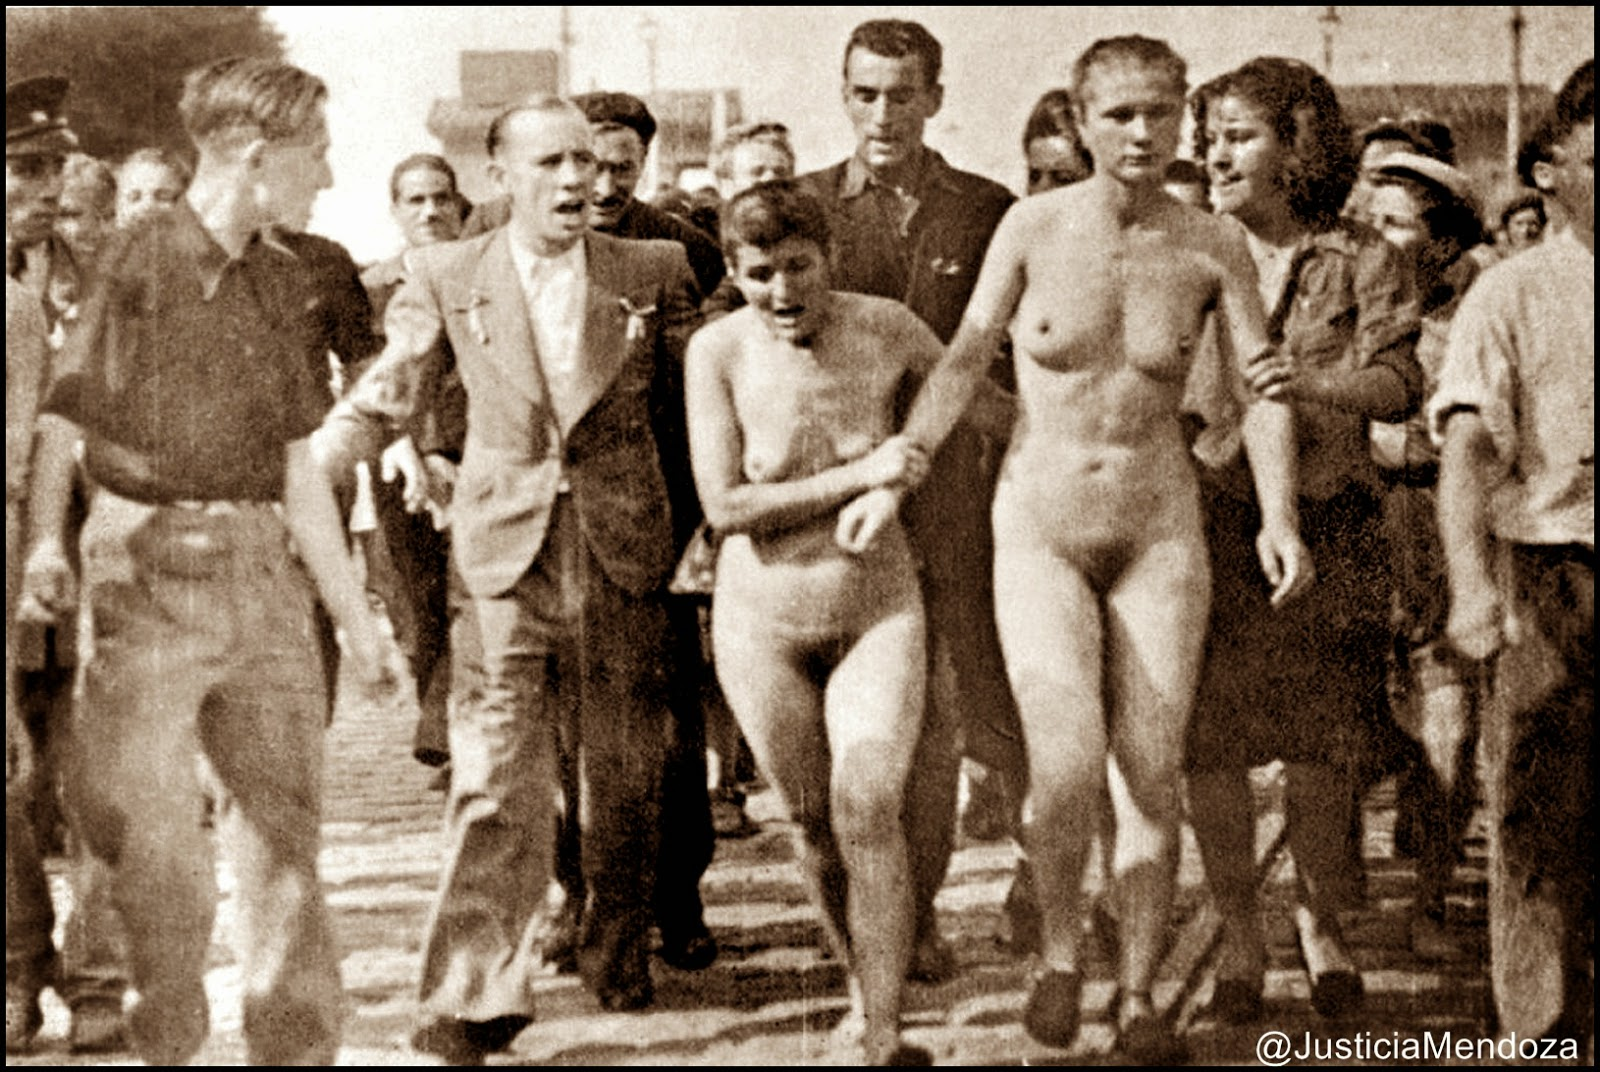 naked-jewish-girls-in-concentration-camps